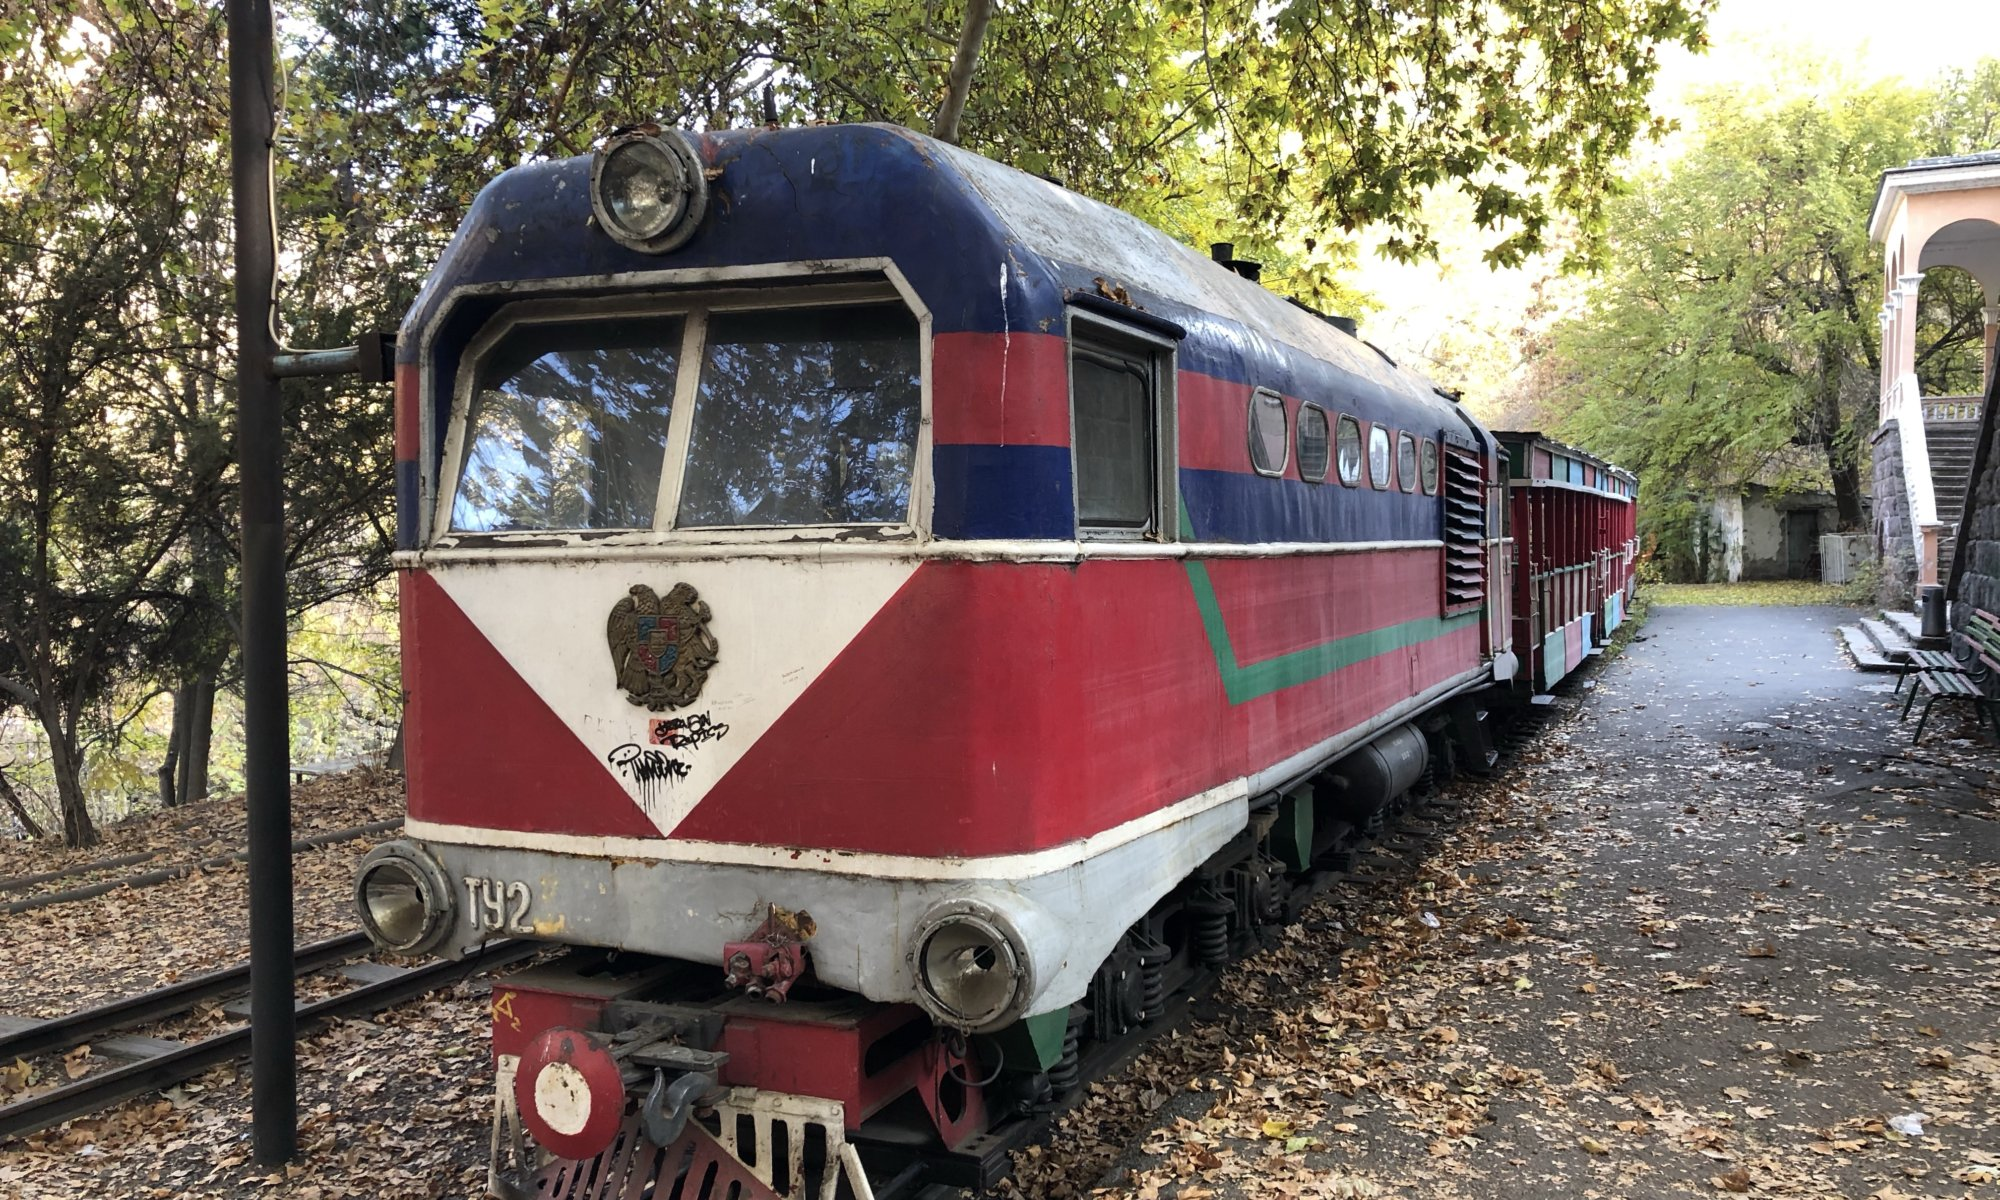 Children's railway, Երևան